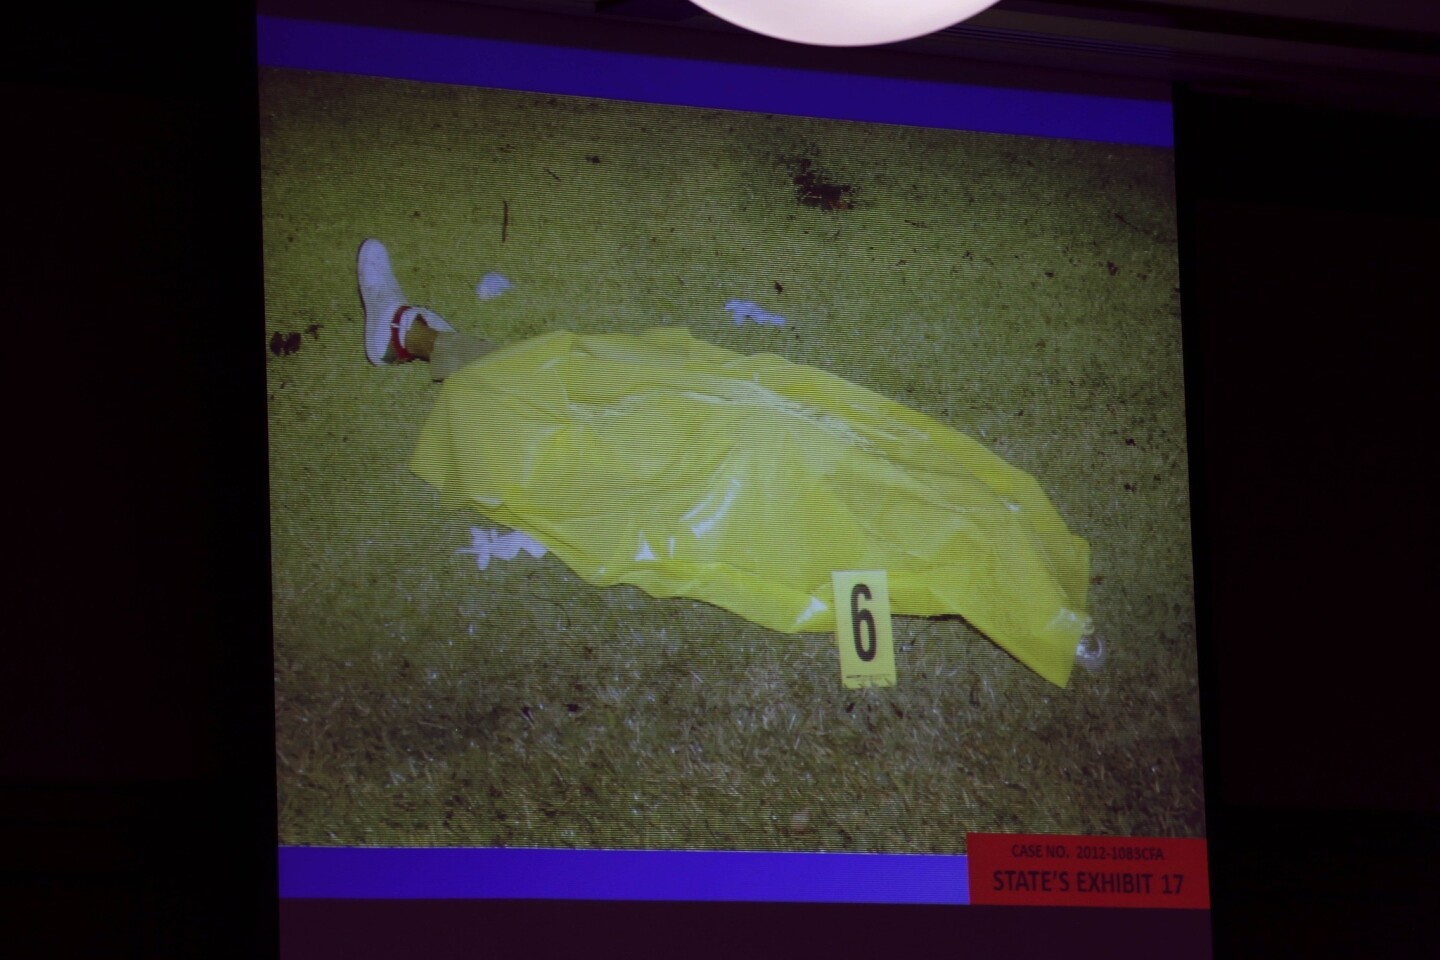 This photo, which shows Trayvon Martin's body covered with a plastic tarp on the night he was shot, was entered into evidence by the State of Florida during George Zimmerman's trial.